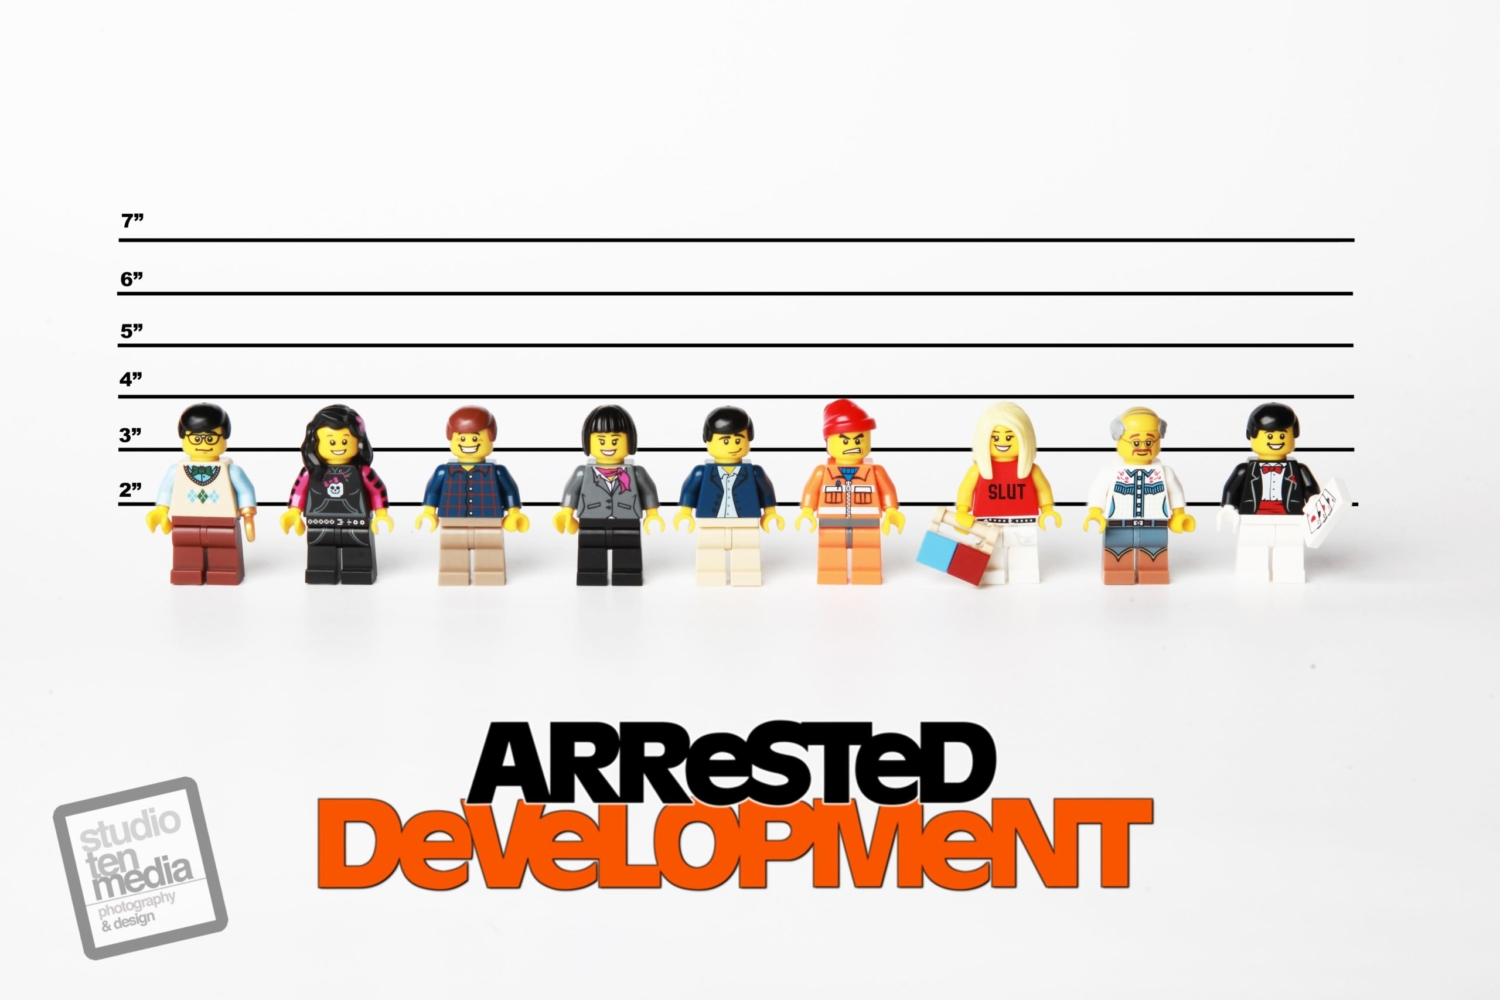 Arrested Development Lego by Debbie Hickey